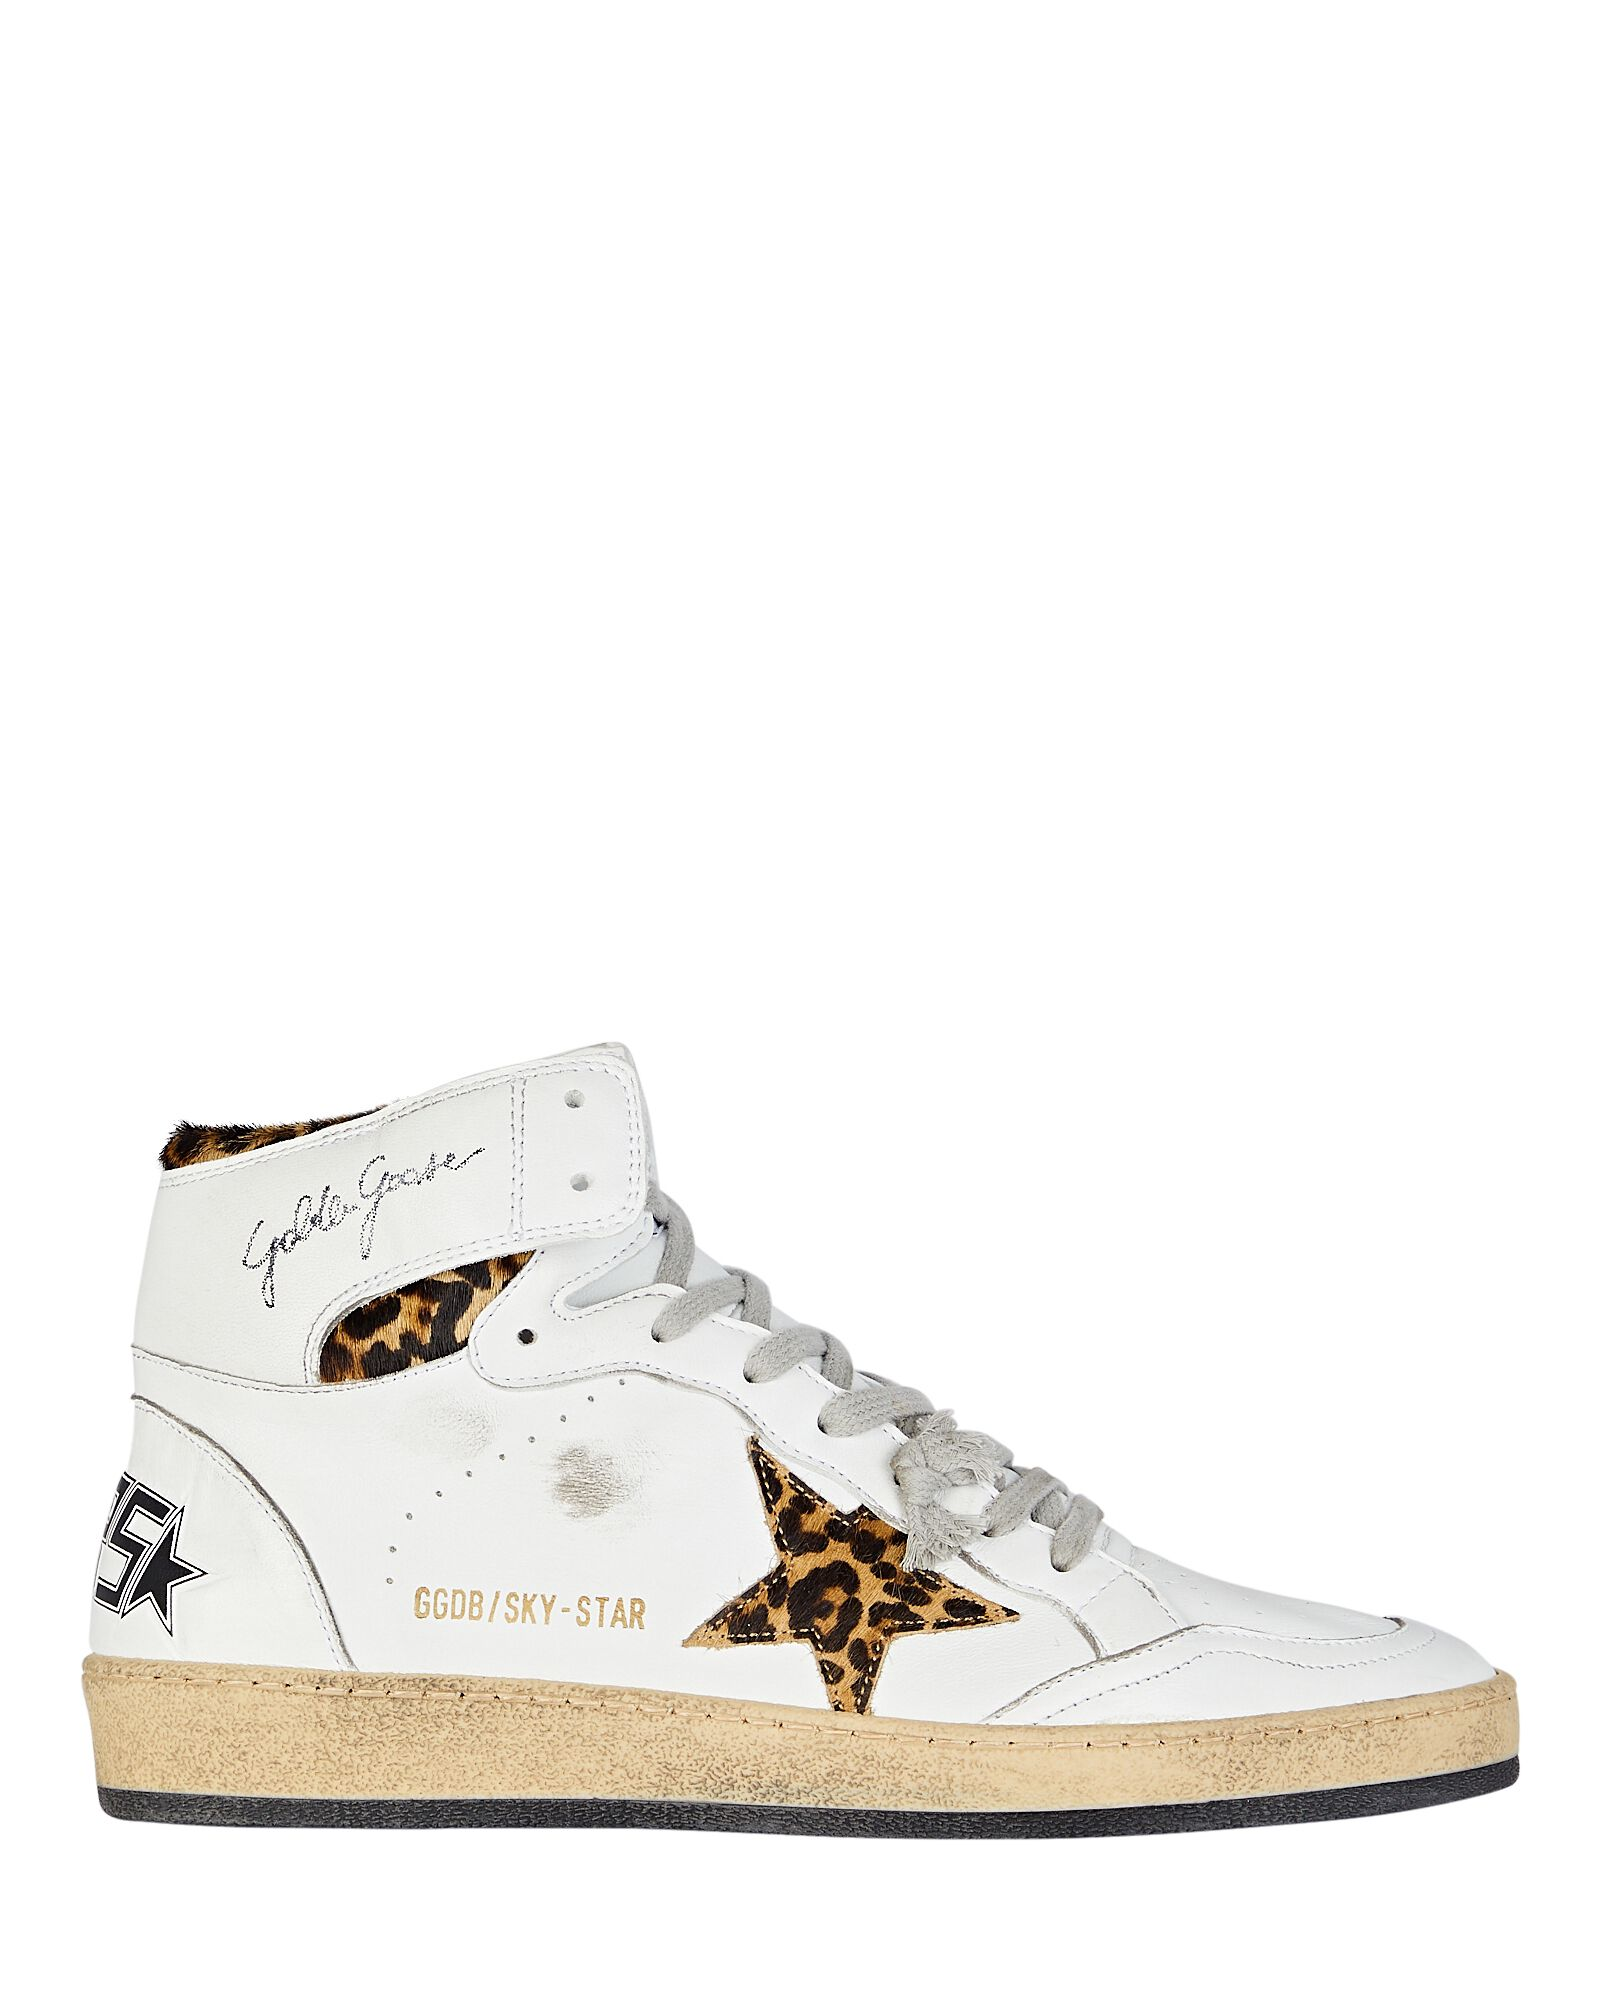 Sky Star Leather High-Top Sneakers, WHITE, hi-res